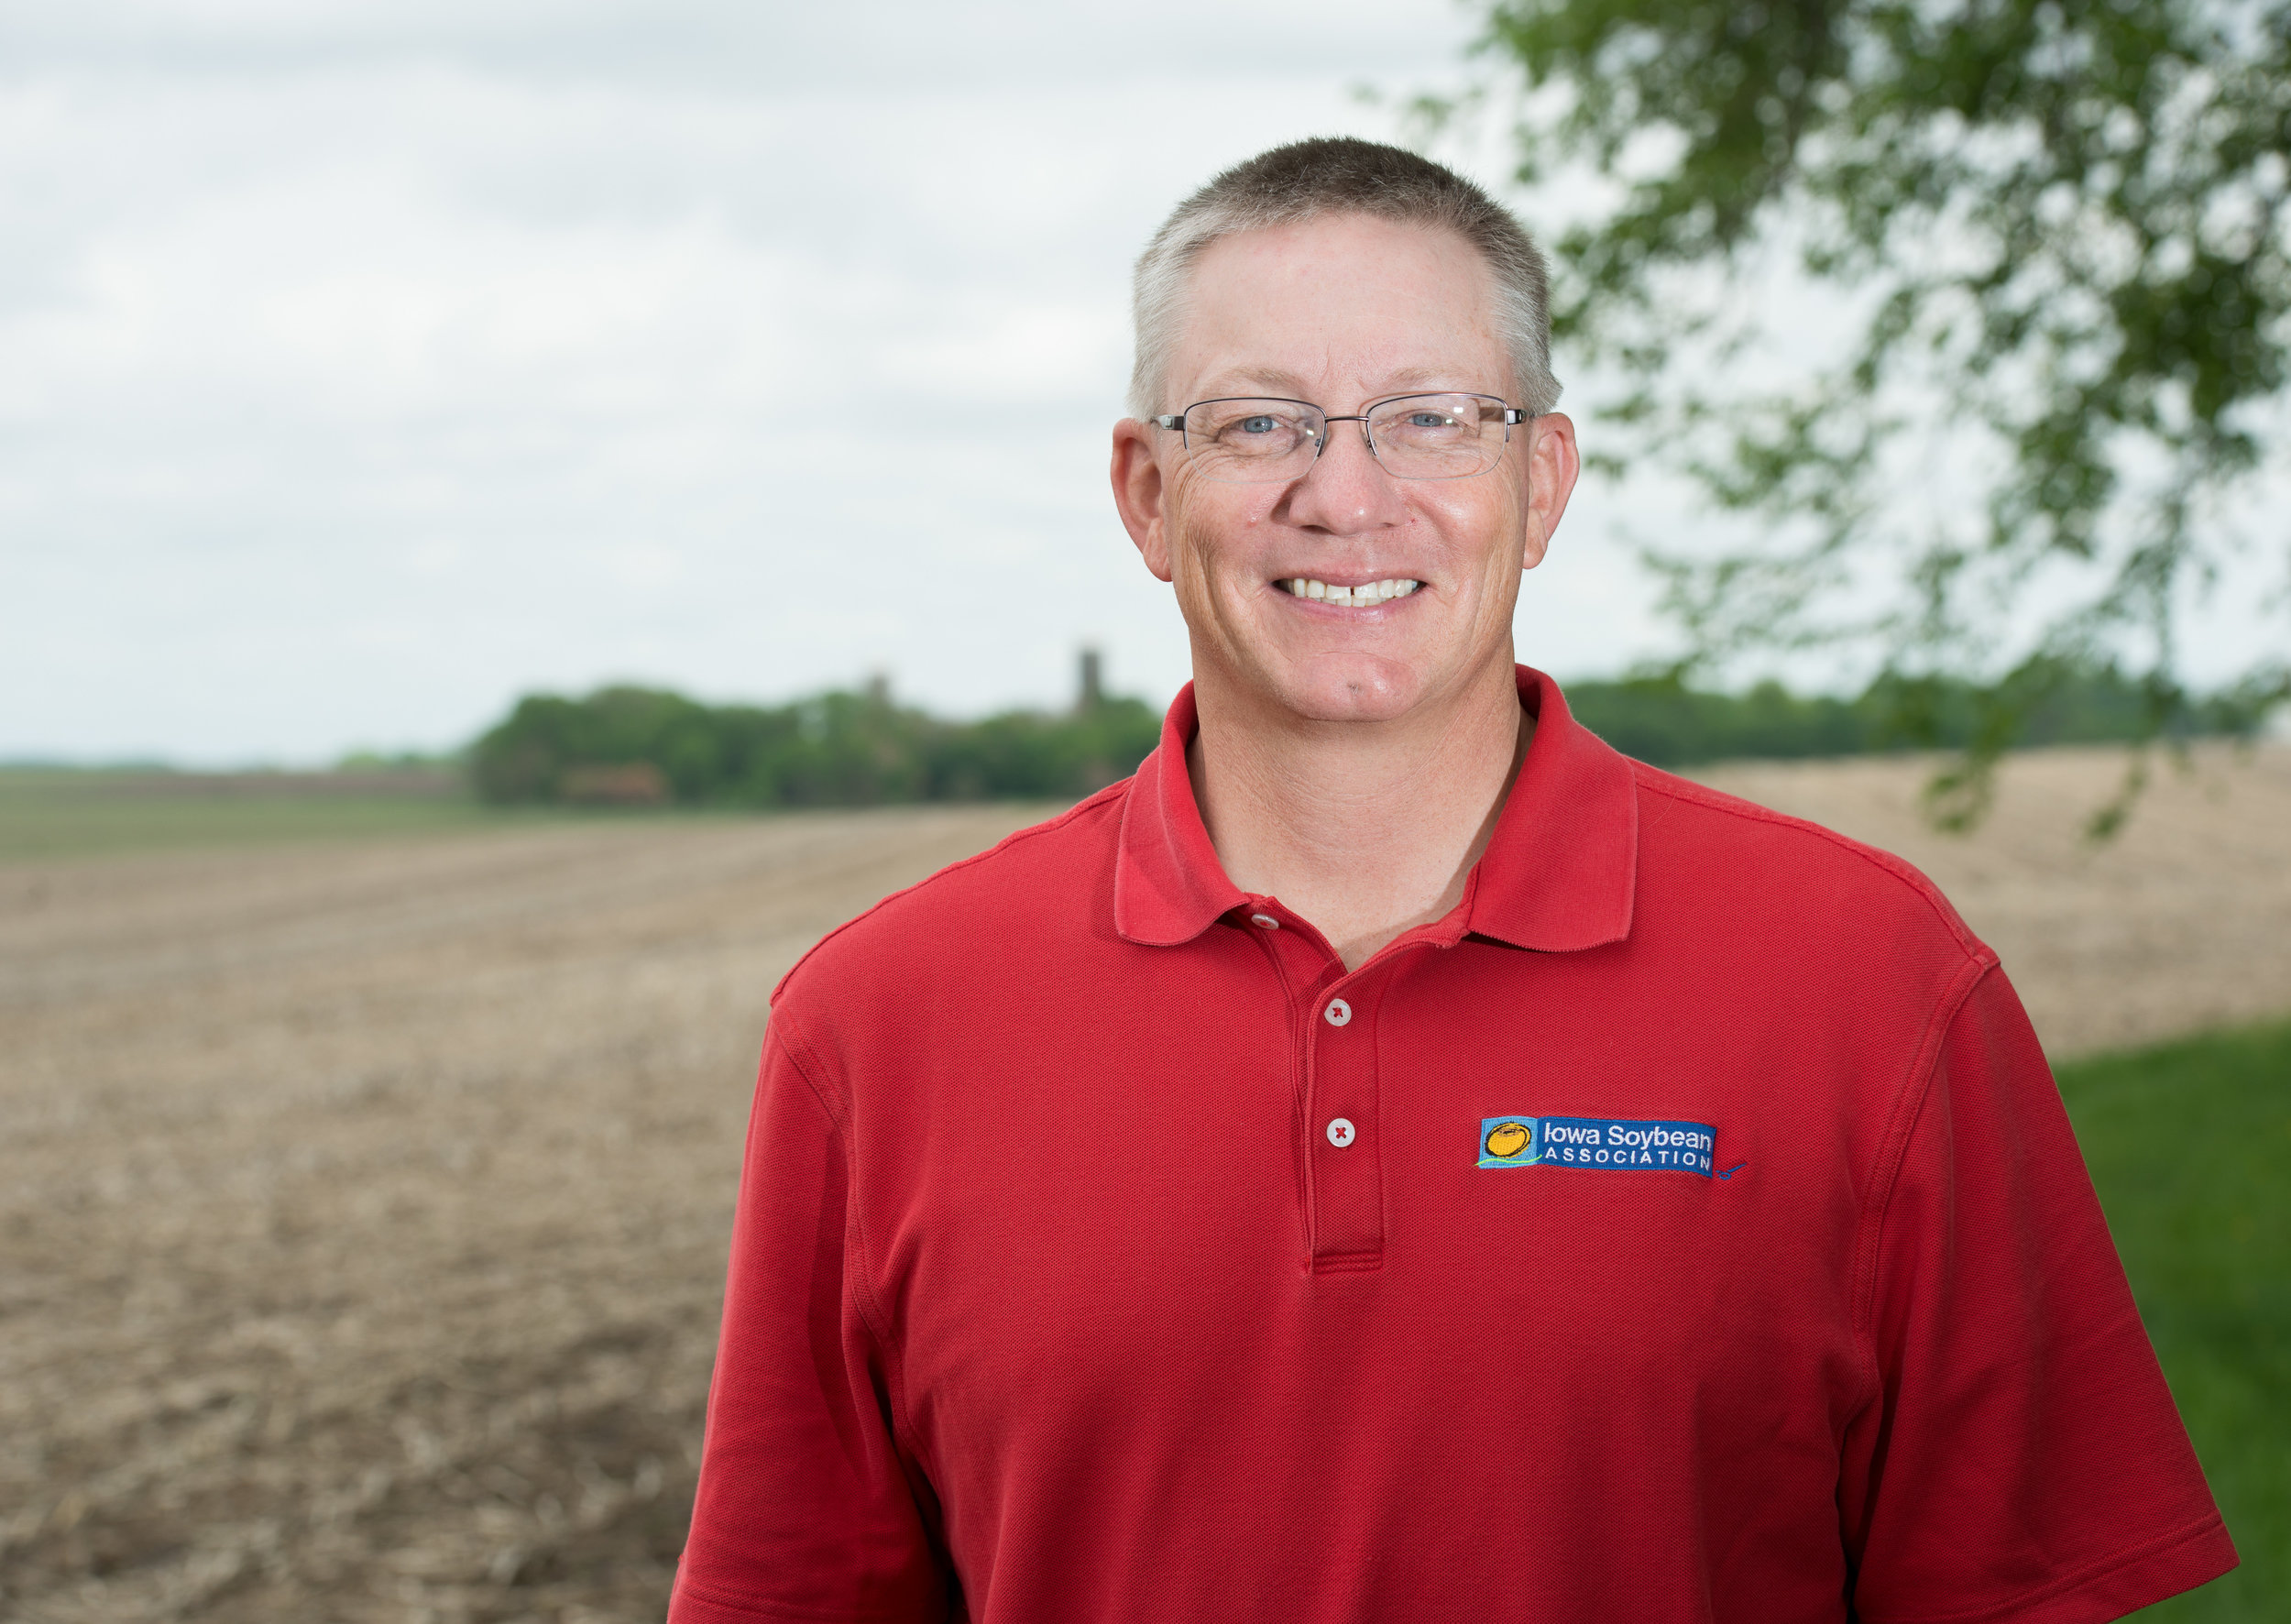 Tom Oswald farms soybeans and corn in Cleghorn. He will share a behind-the-scenes view of farm life in this year's Farm Life Journal series. Photo credit: Joseph L. Murphy/Iowa Soybean Association